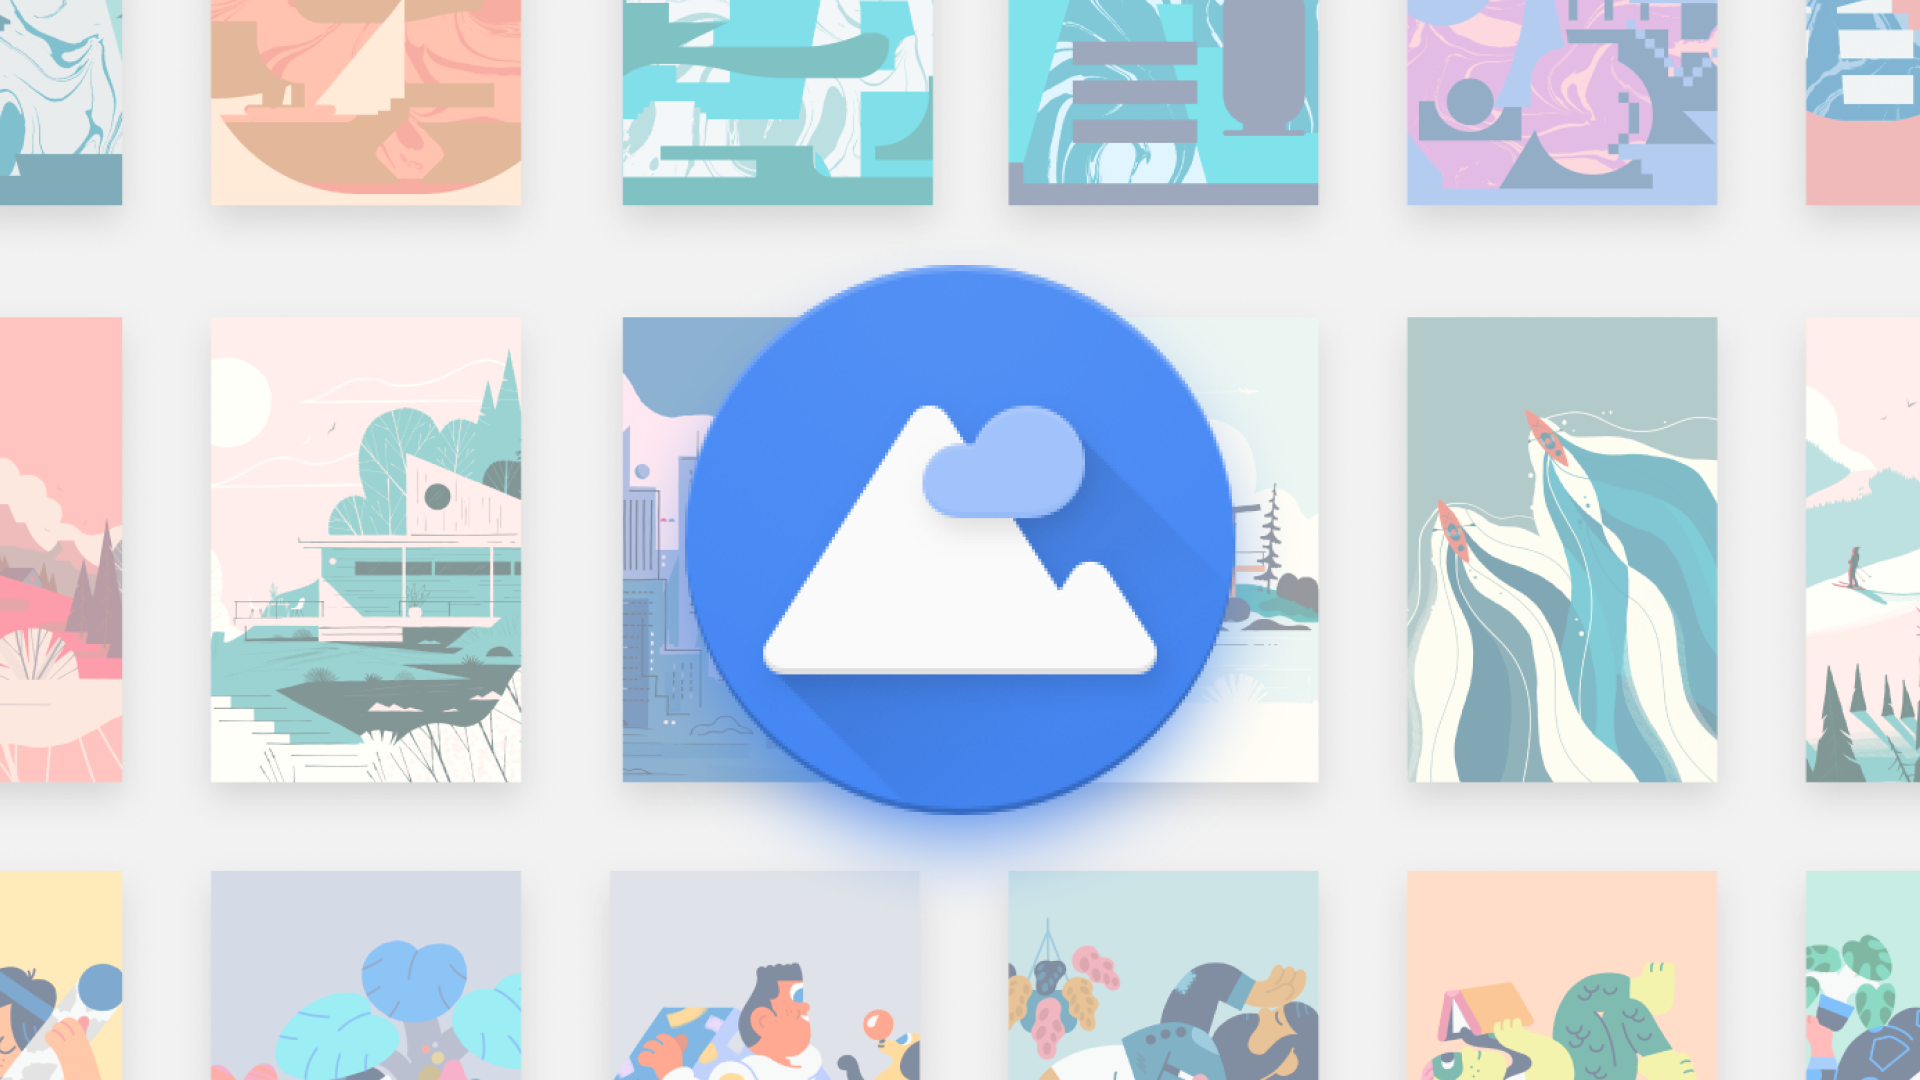 Google published a beautiful new set of wallpapers on Chrome OS, and you can download them here